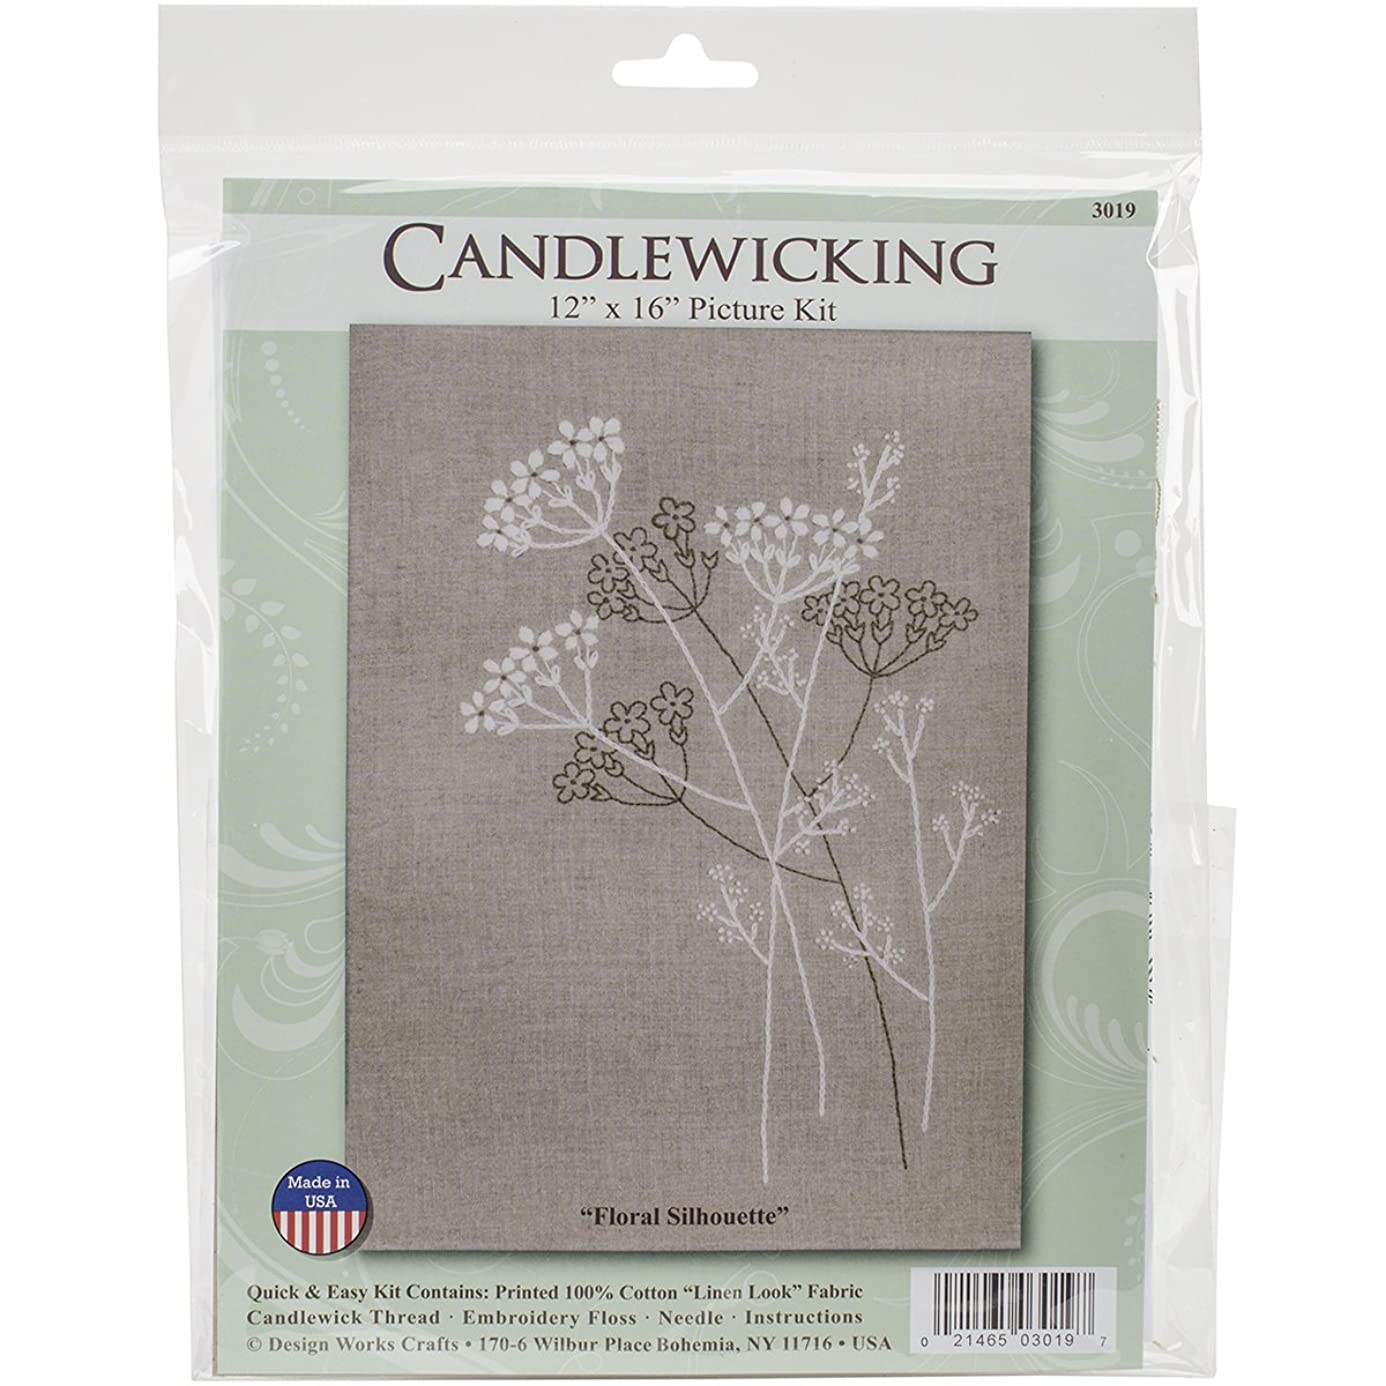 Design Works Crafts Queen Anne's Lace Candlewick Kit, 12 by 16 ilm1279657